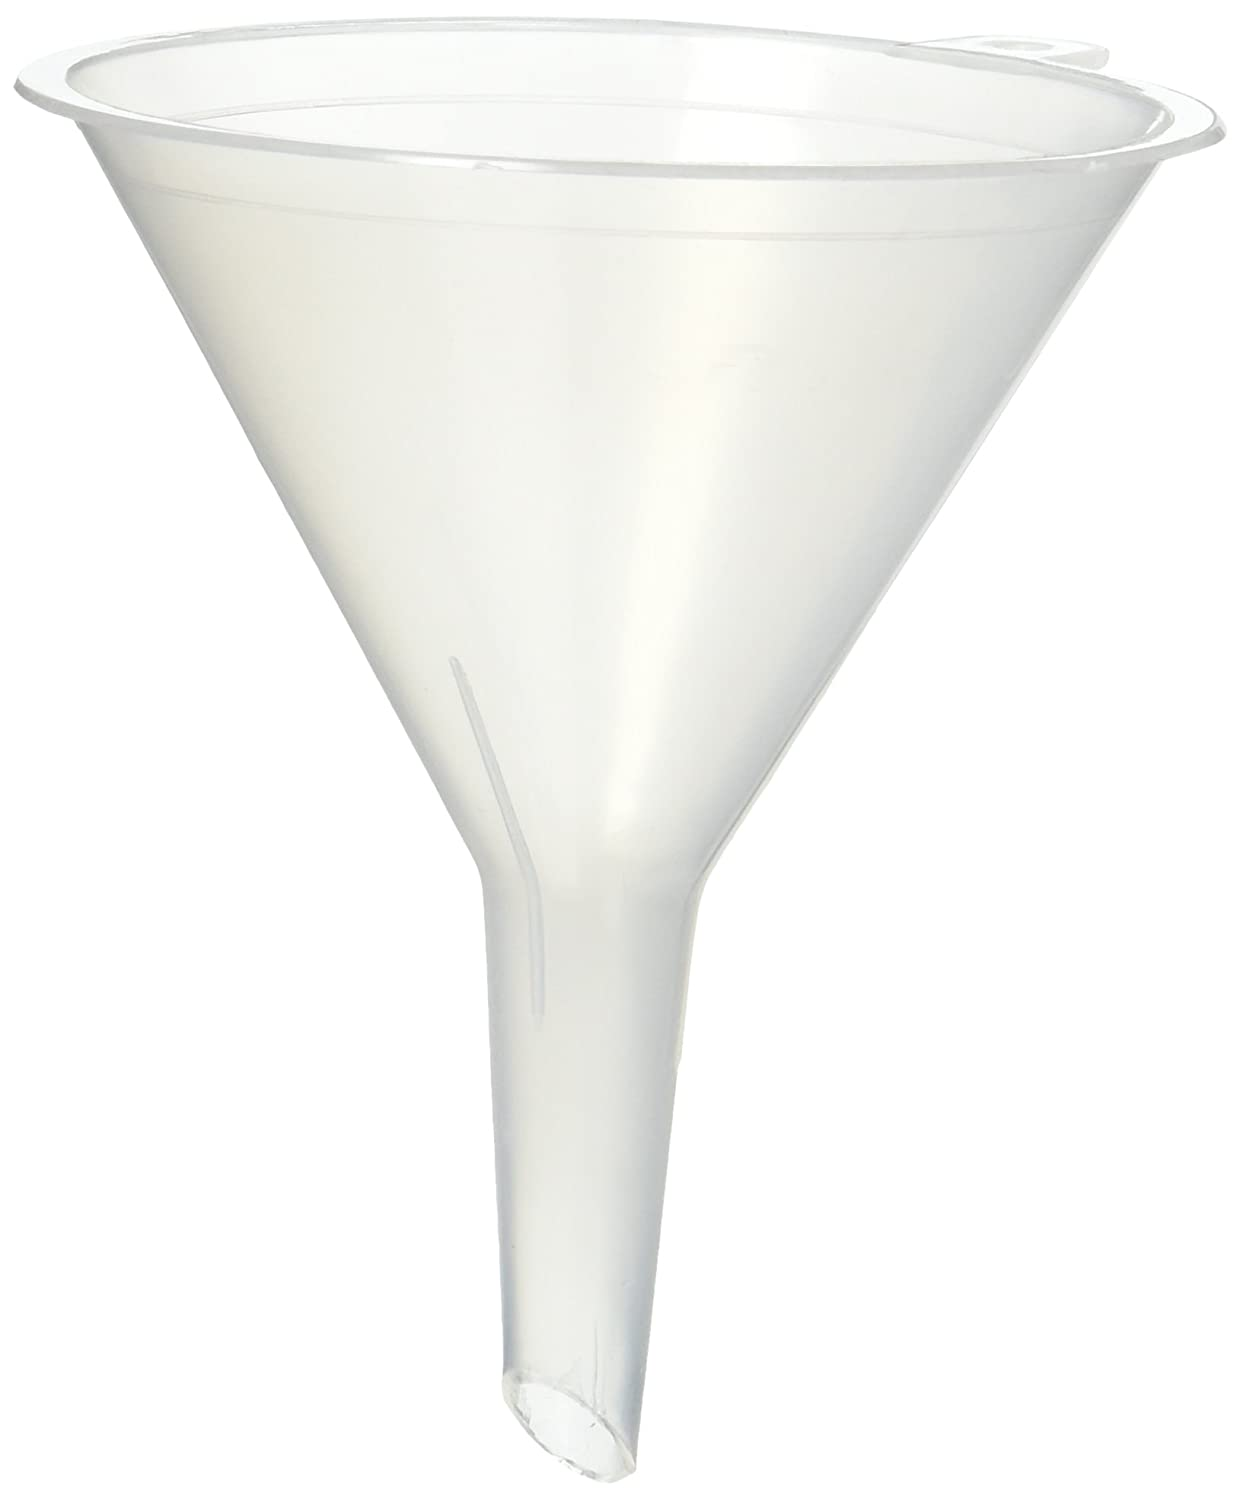 2-oz. Plastic Funnel (pack of 24) S&S Worldwide